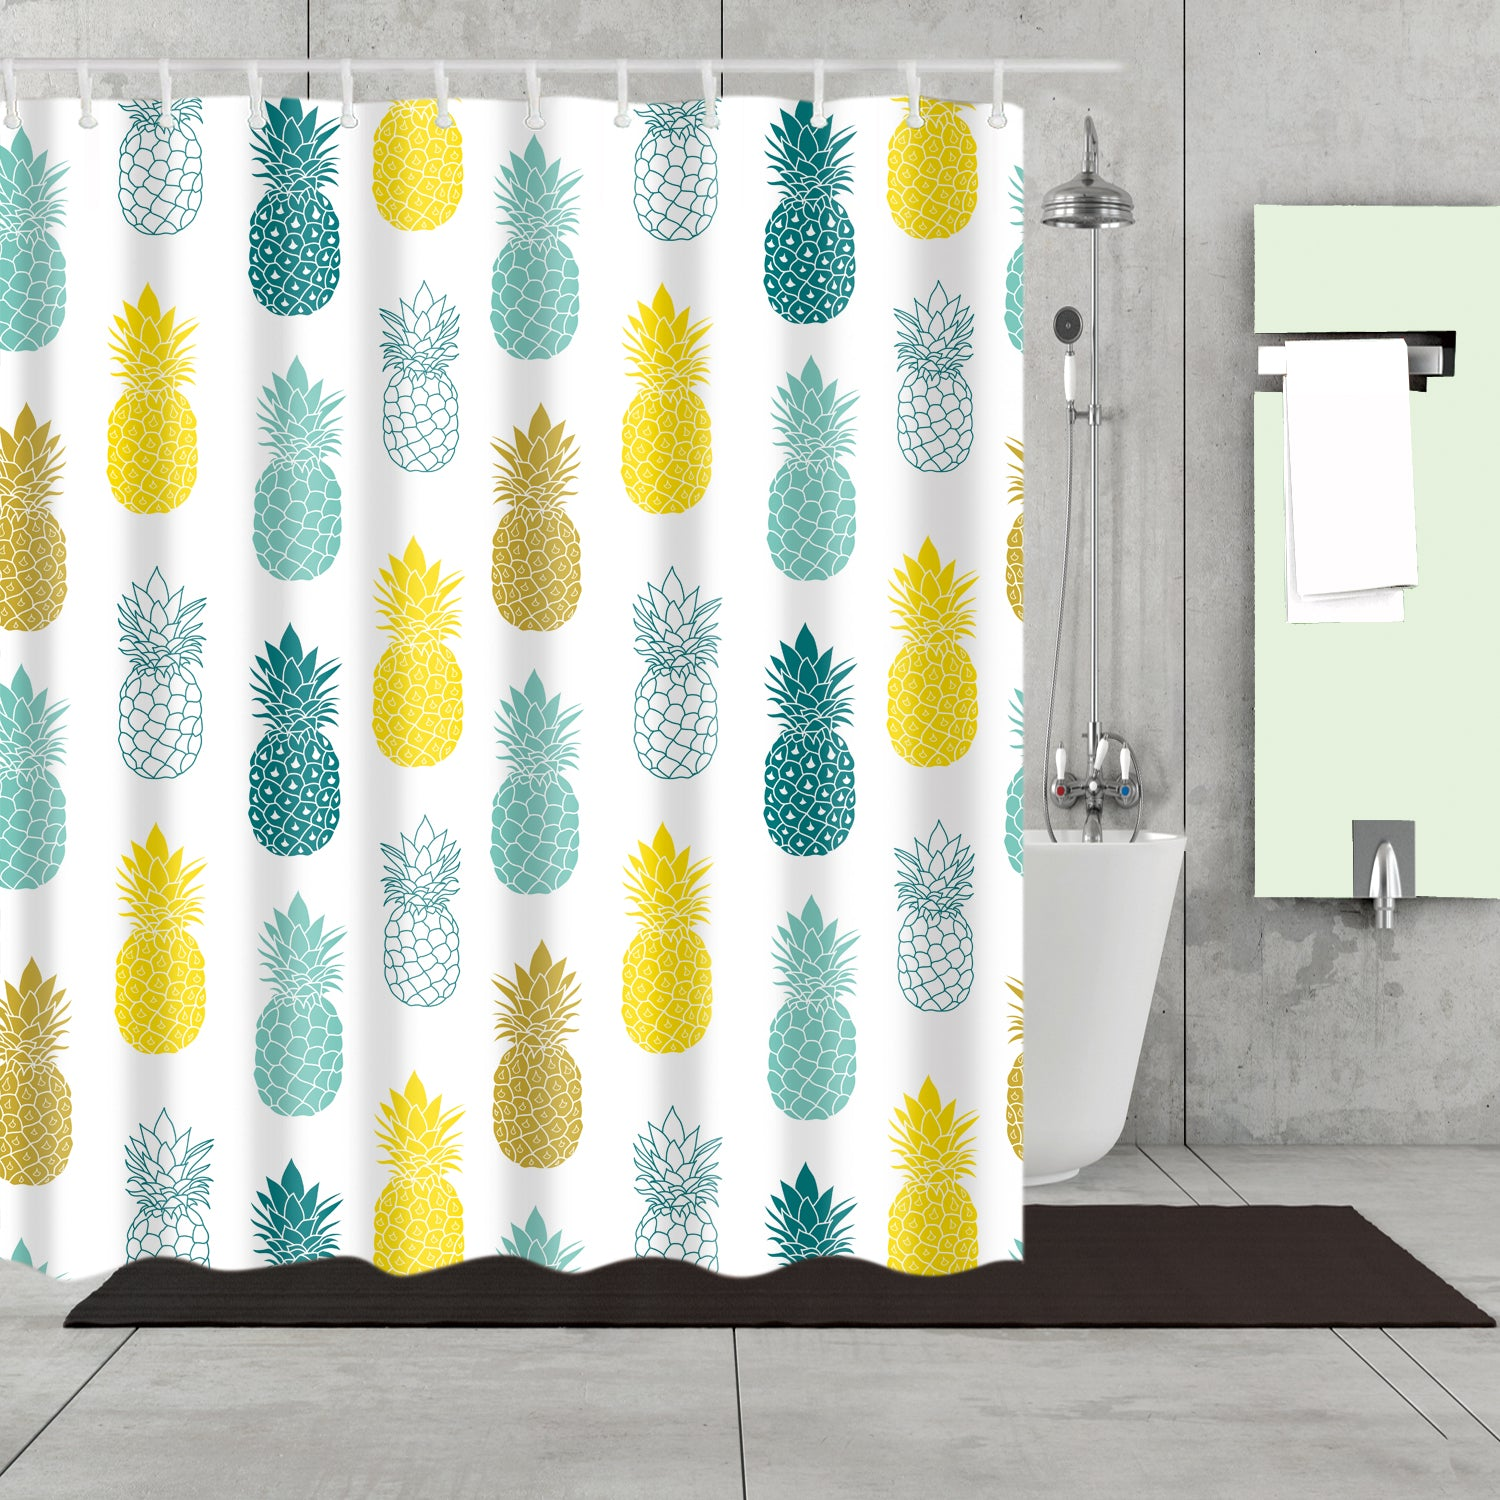 Colorful Seamless Fruit Gold Pineapple Shower Curtain Bathroom Decor